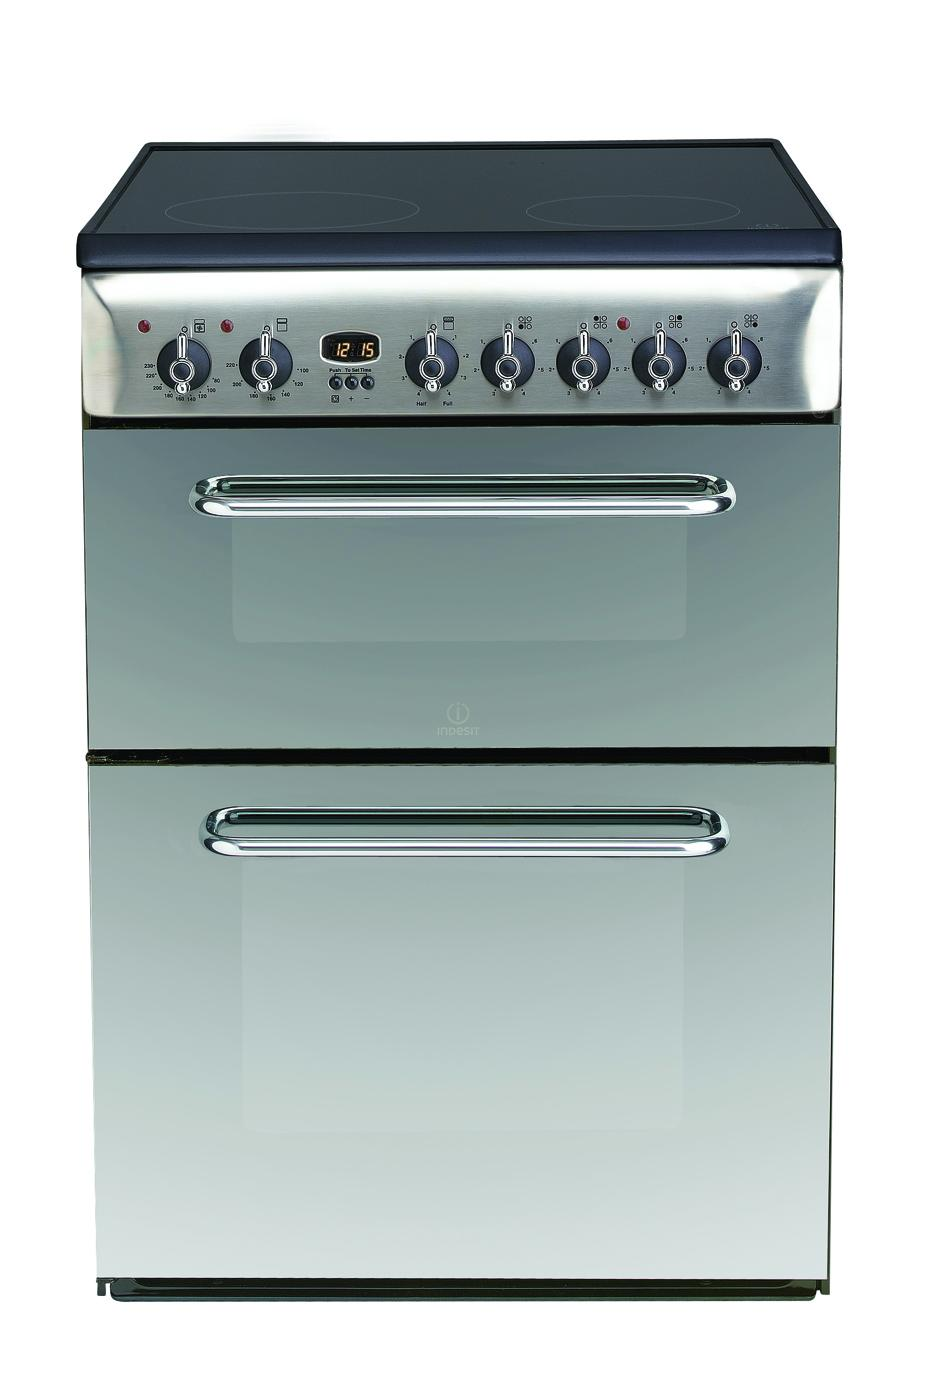 Uncategorized Kitchen Appliances Buy Now Pay Later buy now pay later 0 apr page 248 dalzells of markethill indesit kdp60cs 60cm mini range cooker stainless steel